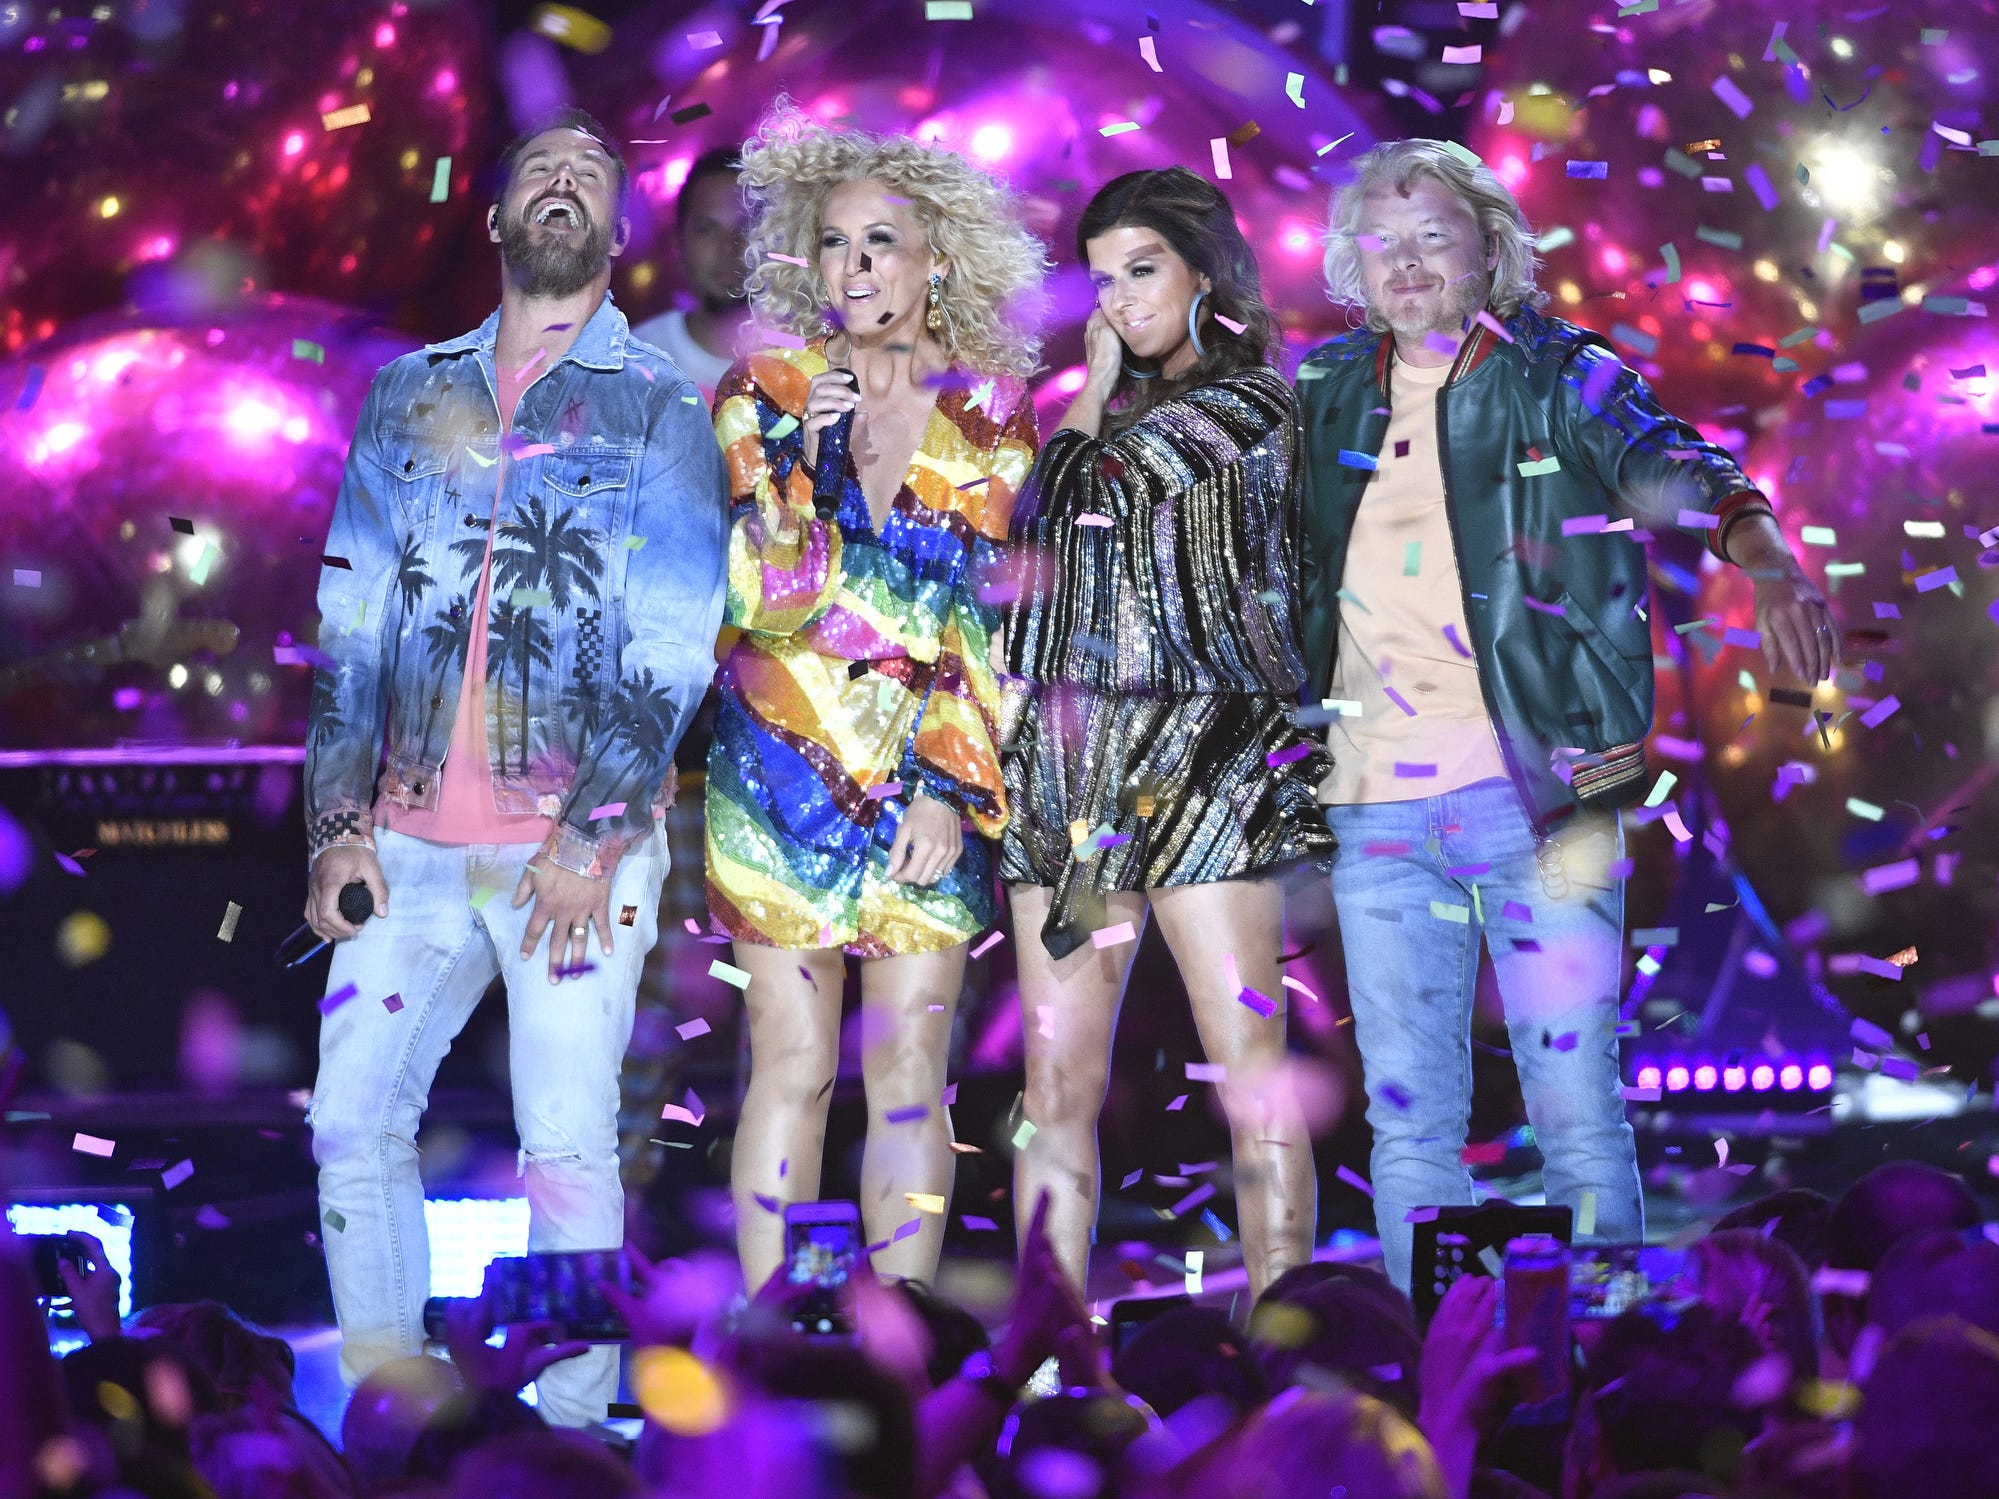 NOV. 6 